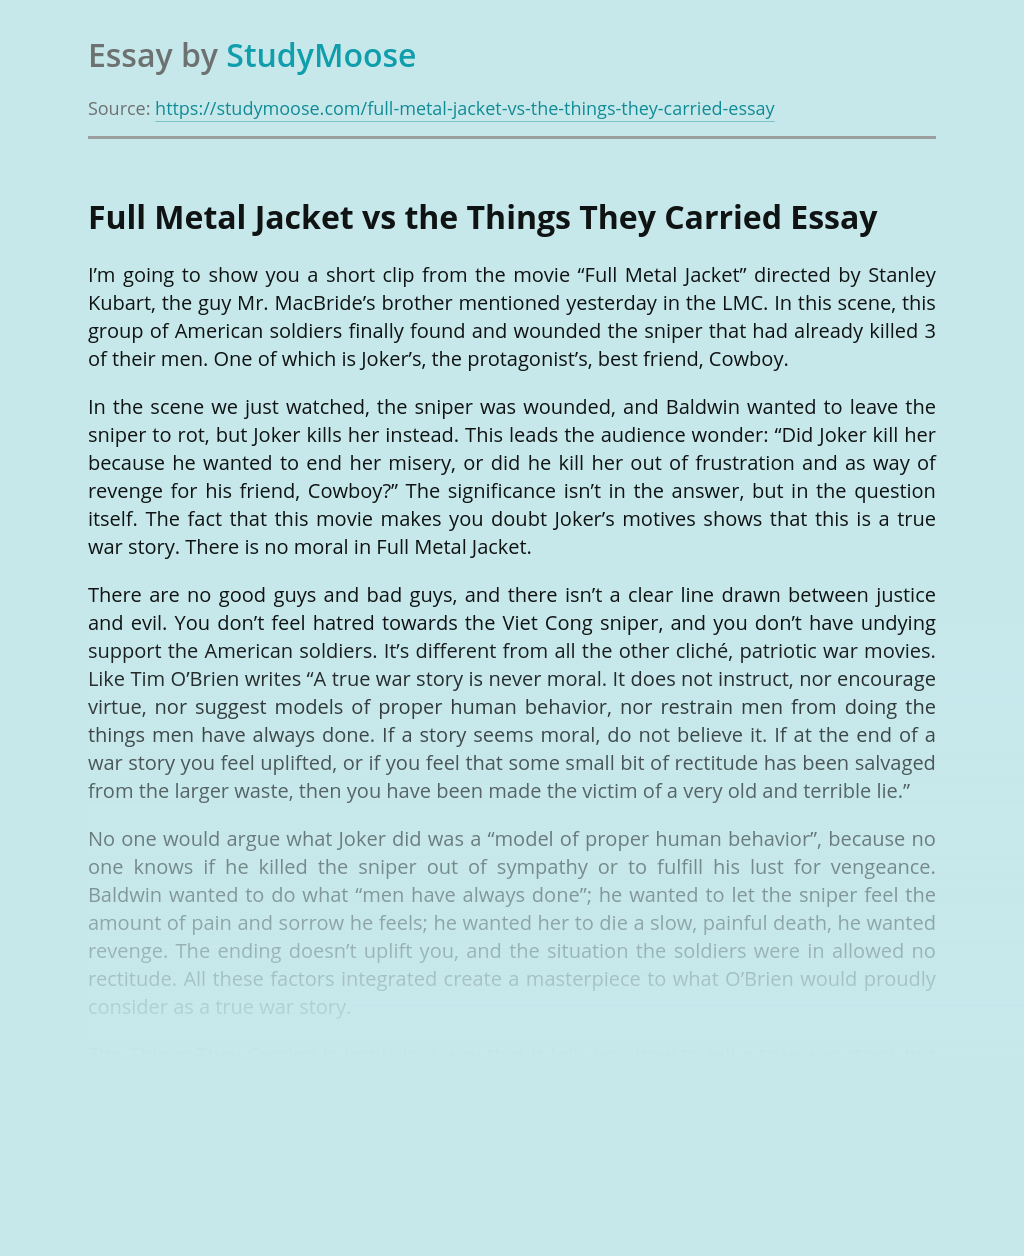 Full Metal Jacket vs the Things They Carried